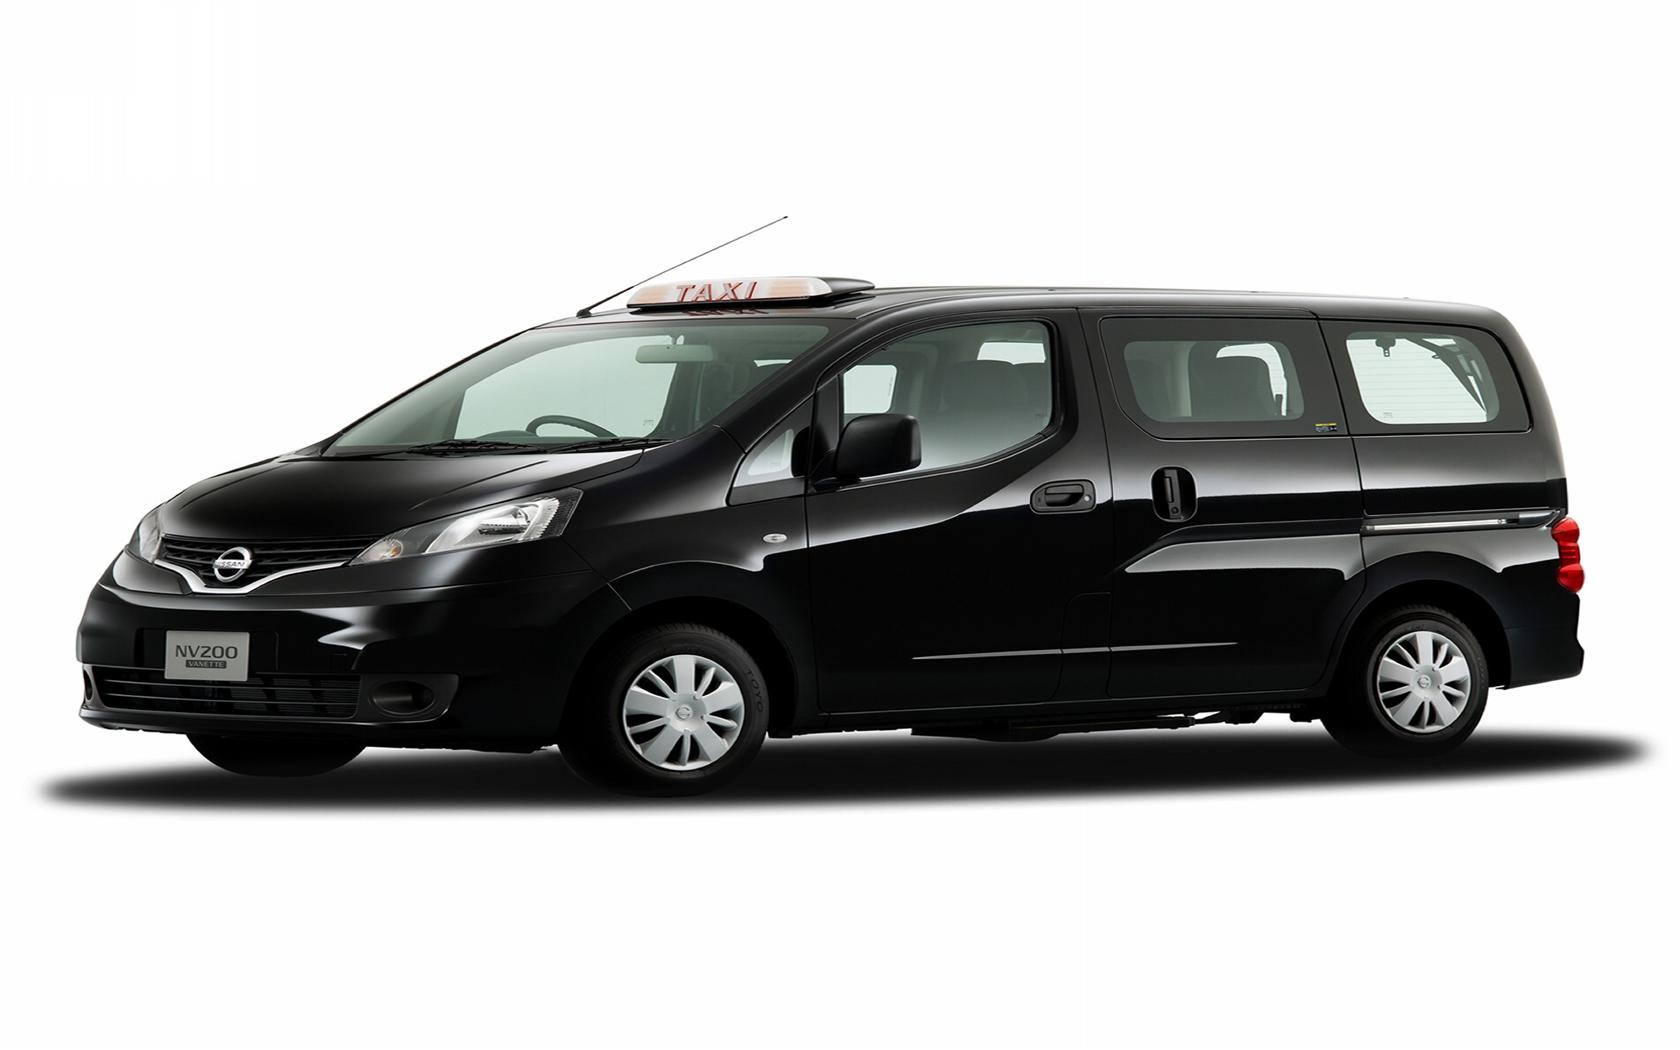 nissan nv200 taxi autoblog. Black Bedroom Furniture Sets. Home Design Ideas